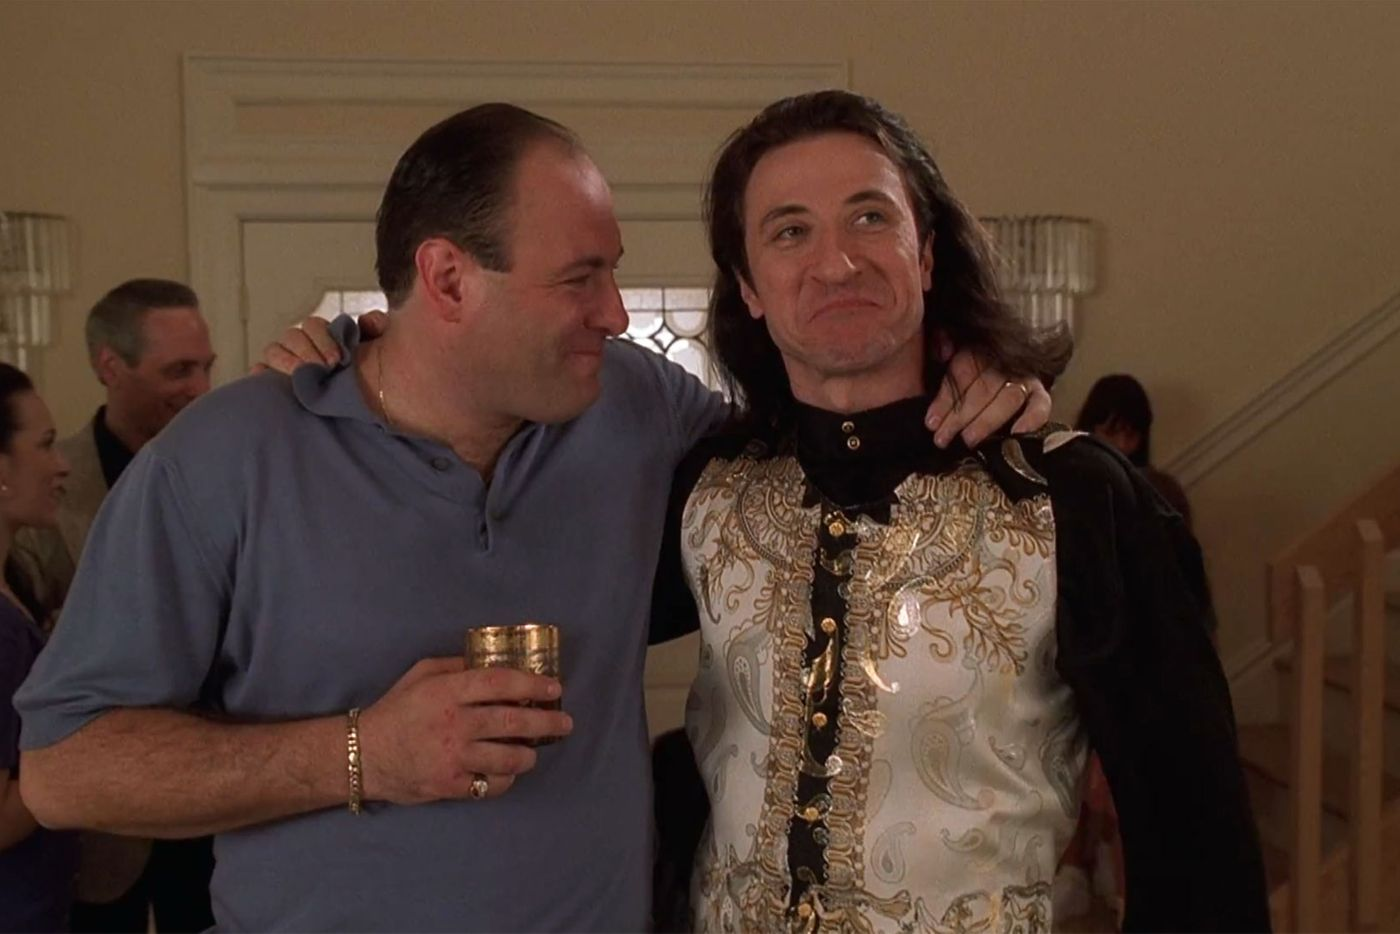 The Sopranos: Best Costumes and Style Moments